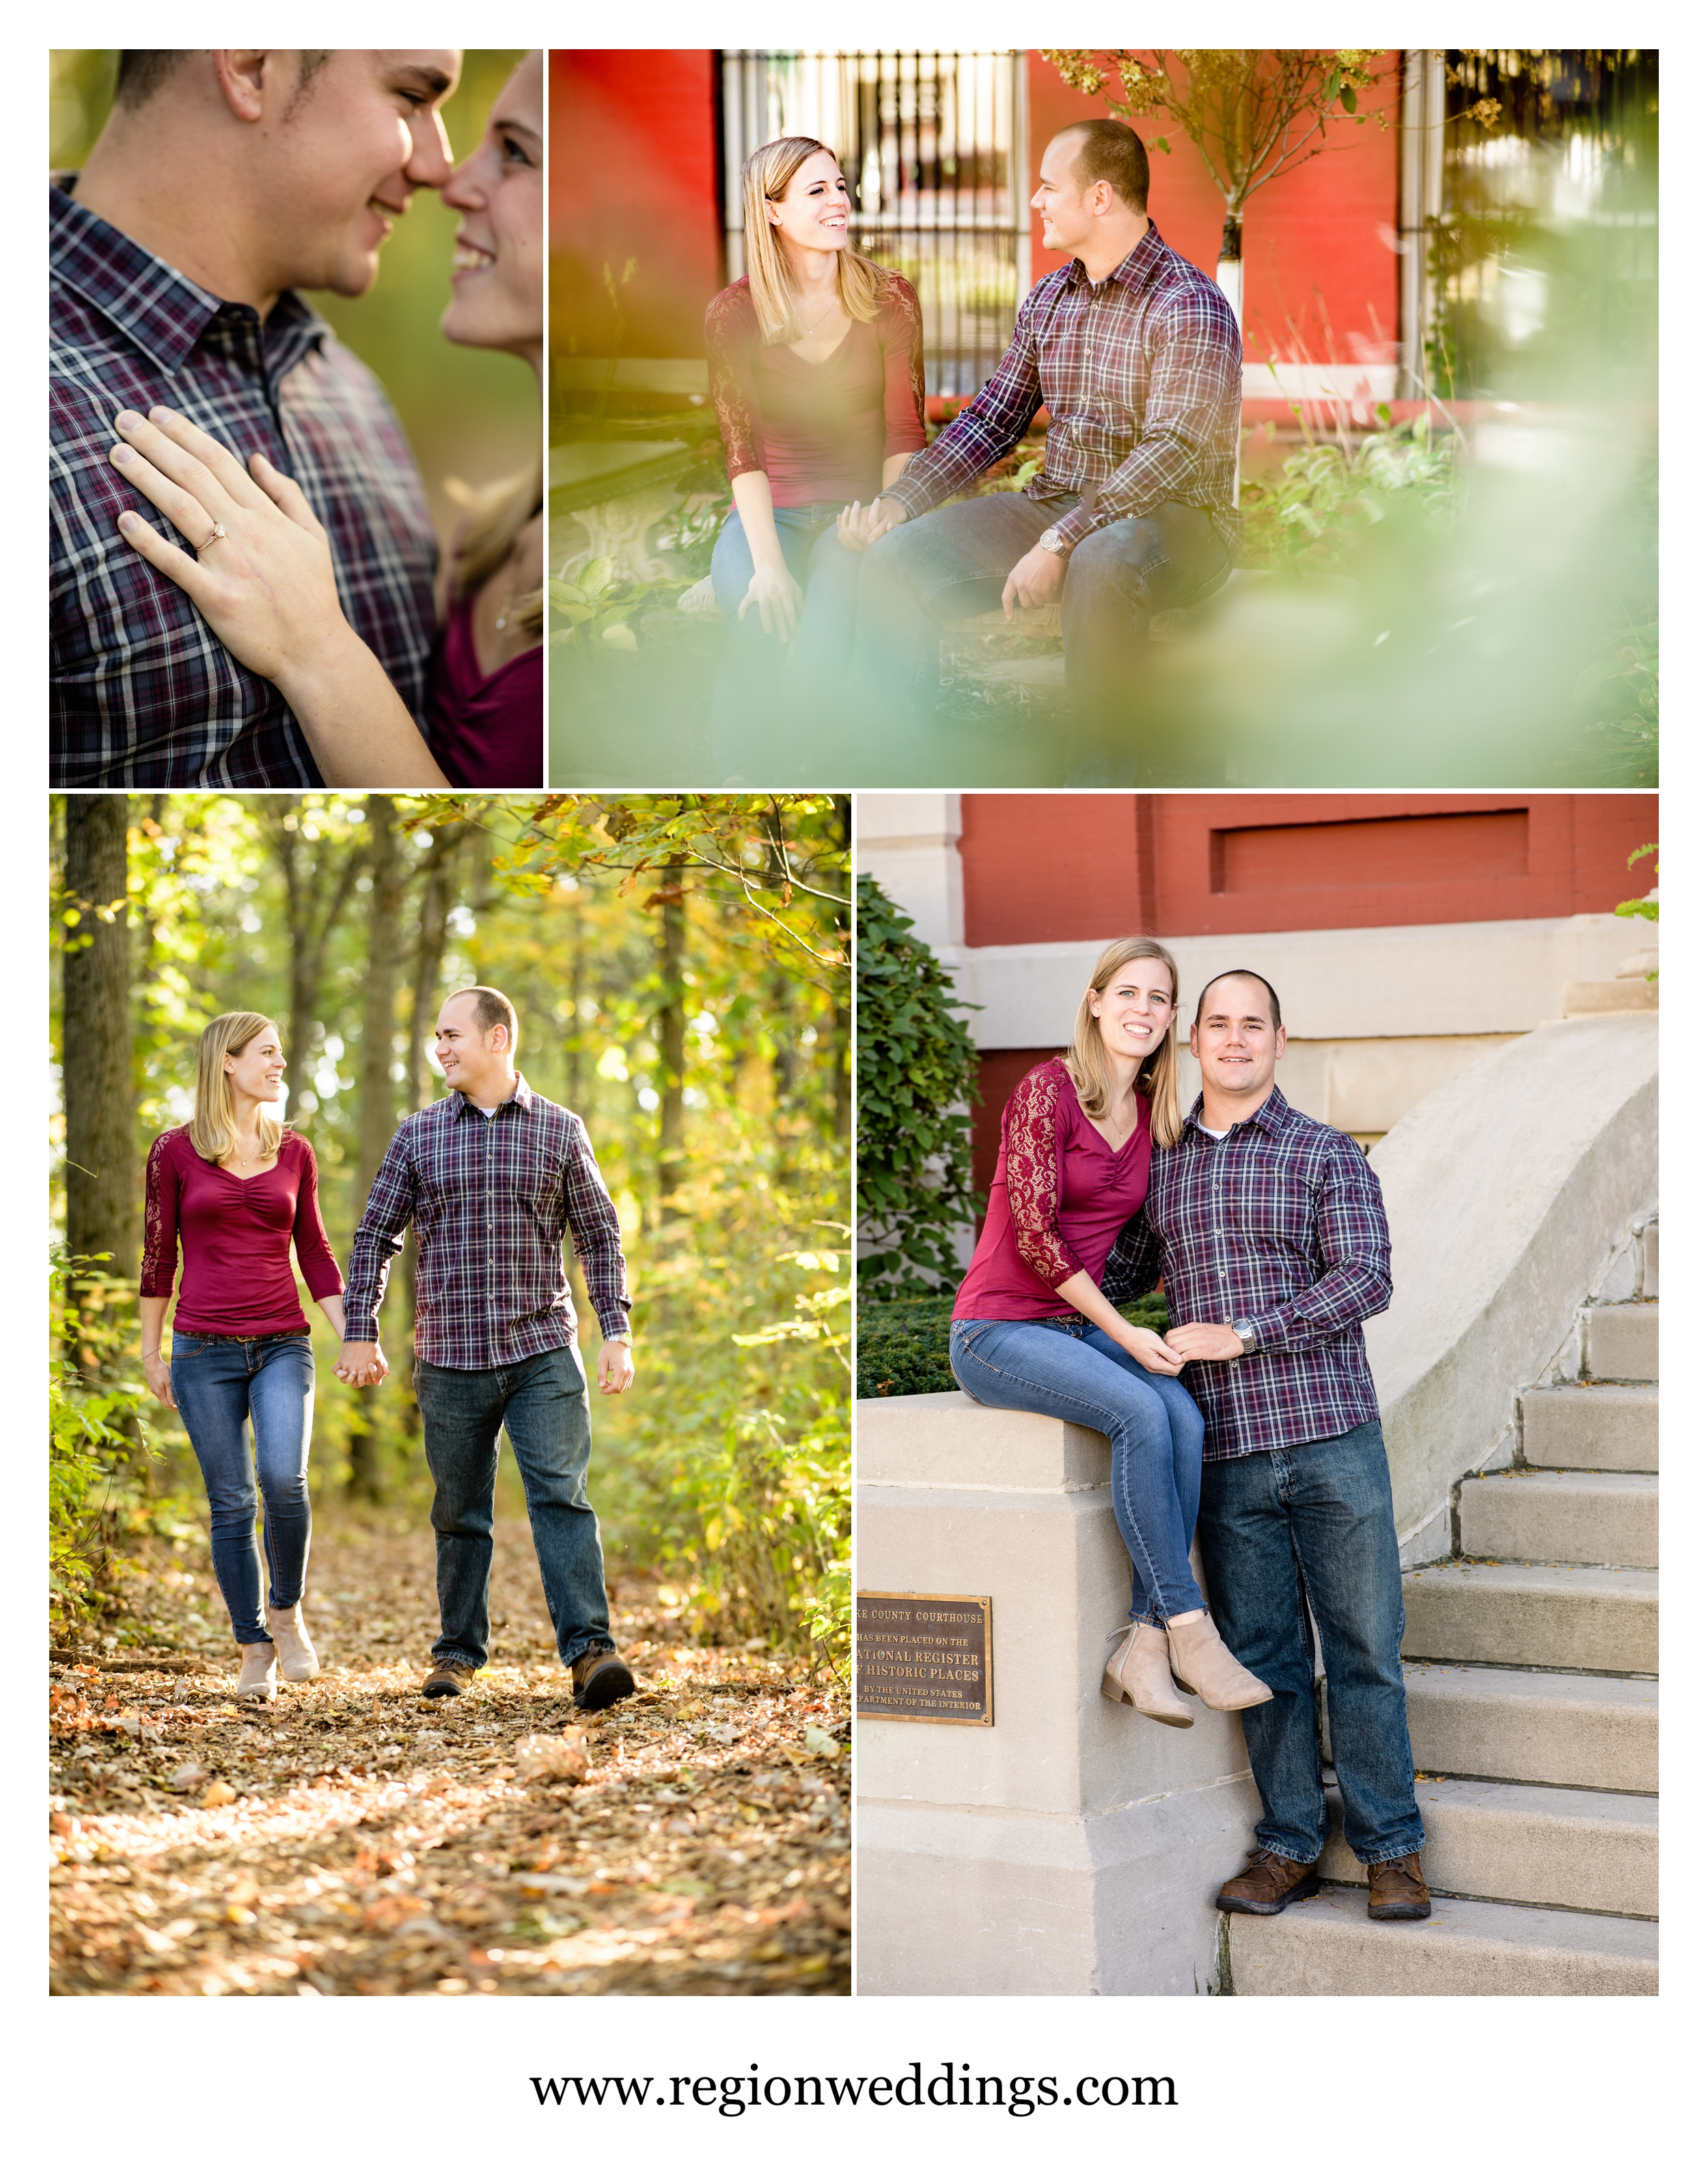 Romantic Fall engagement photos.